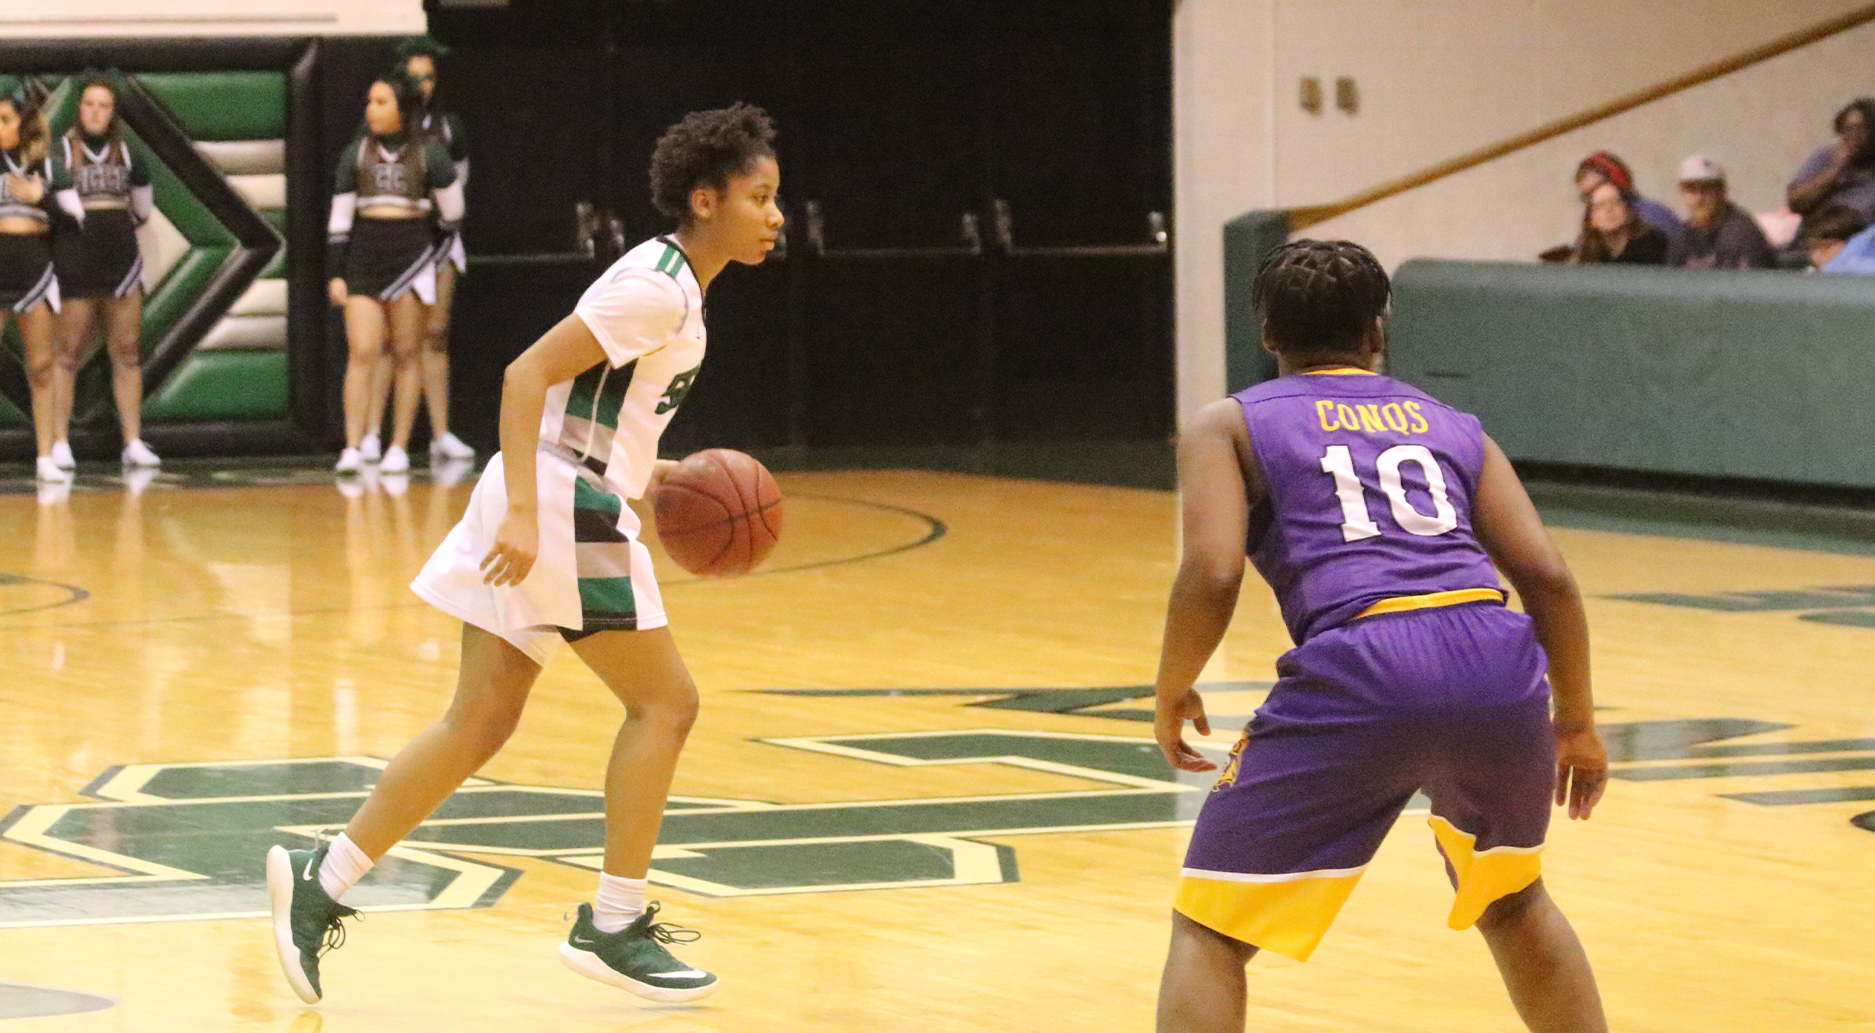 Lady Saints Come From Behind, Win 10th Straight